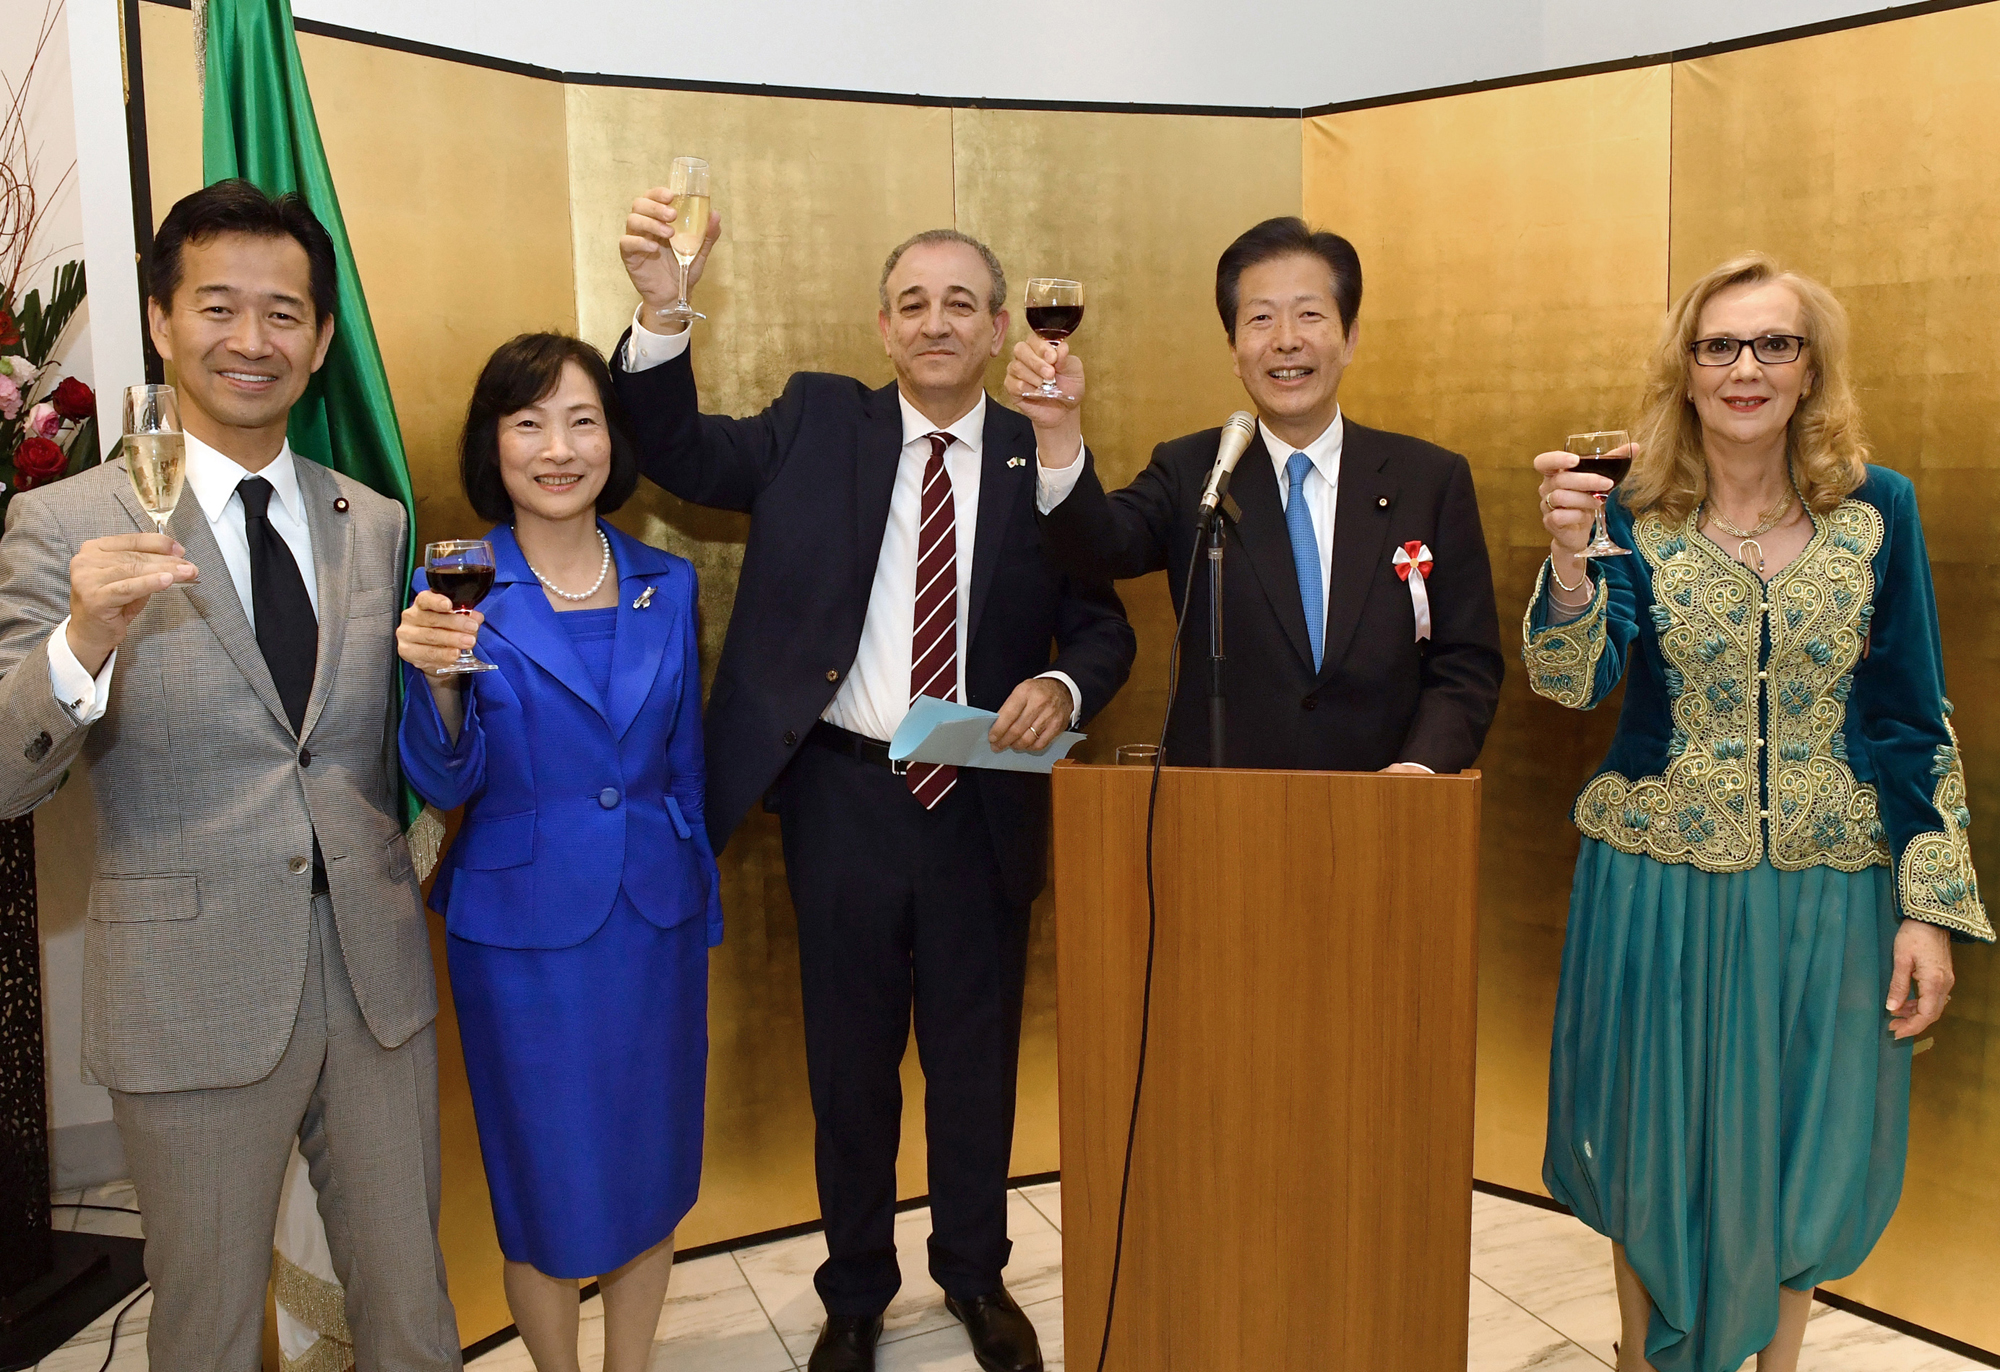 Algerian Ambassador Mohamed El Amine Bencherif (center) leads a toast with (from left) Mitsunari Okamoto, parliamentary vice-minister for foreign affairs; Sanae Yamaguchi; Komeito leader Natsuo Yamaguchi; and the ambassador's wife, Amira, during a reception to celebrate the country's national day at the embassy in Tokyo on Nov. 10. |   YOSHIAKI MIURA